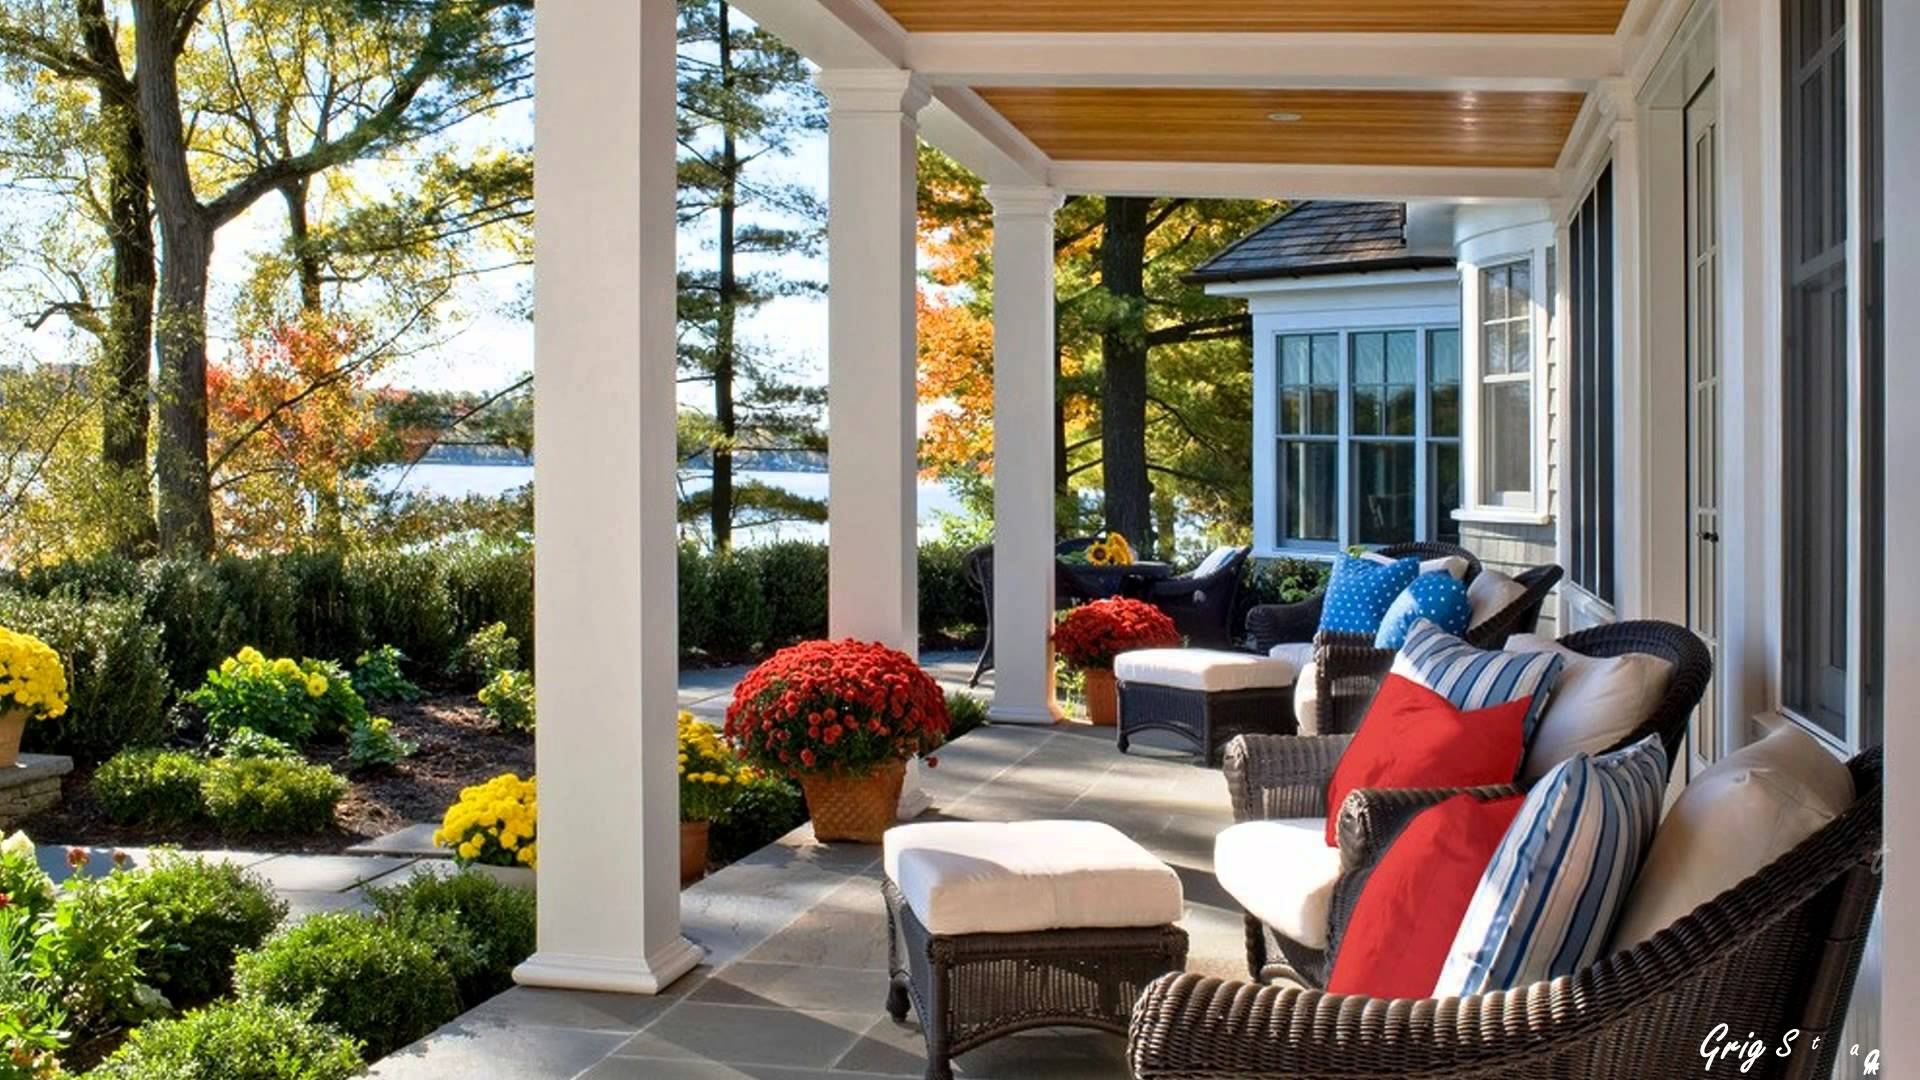 Dreamy Back Porch Ideas Traditional Rear Porch Ideas in sizing 1920 X 1080